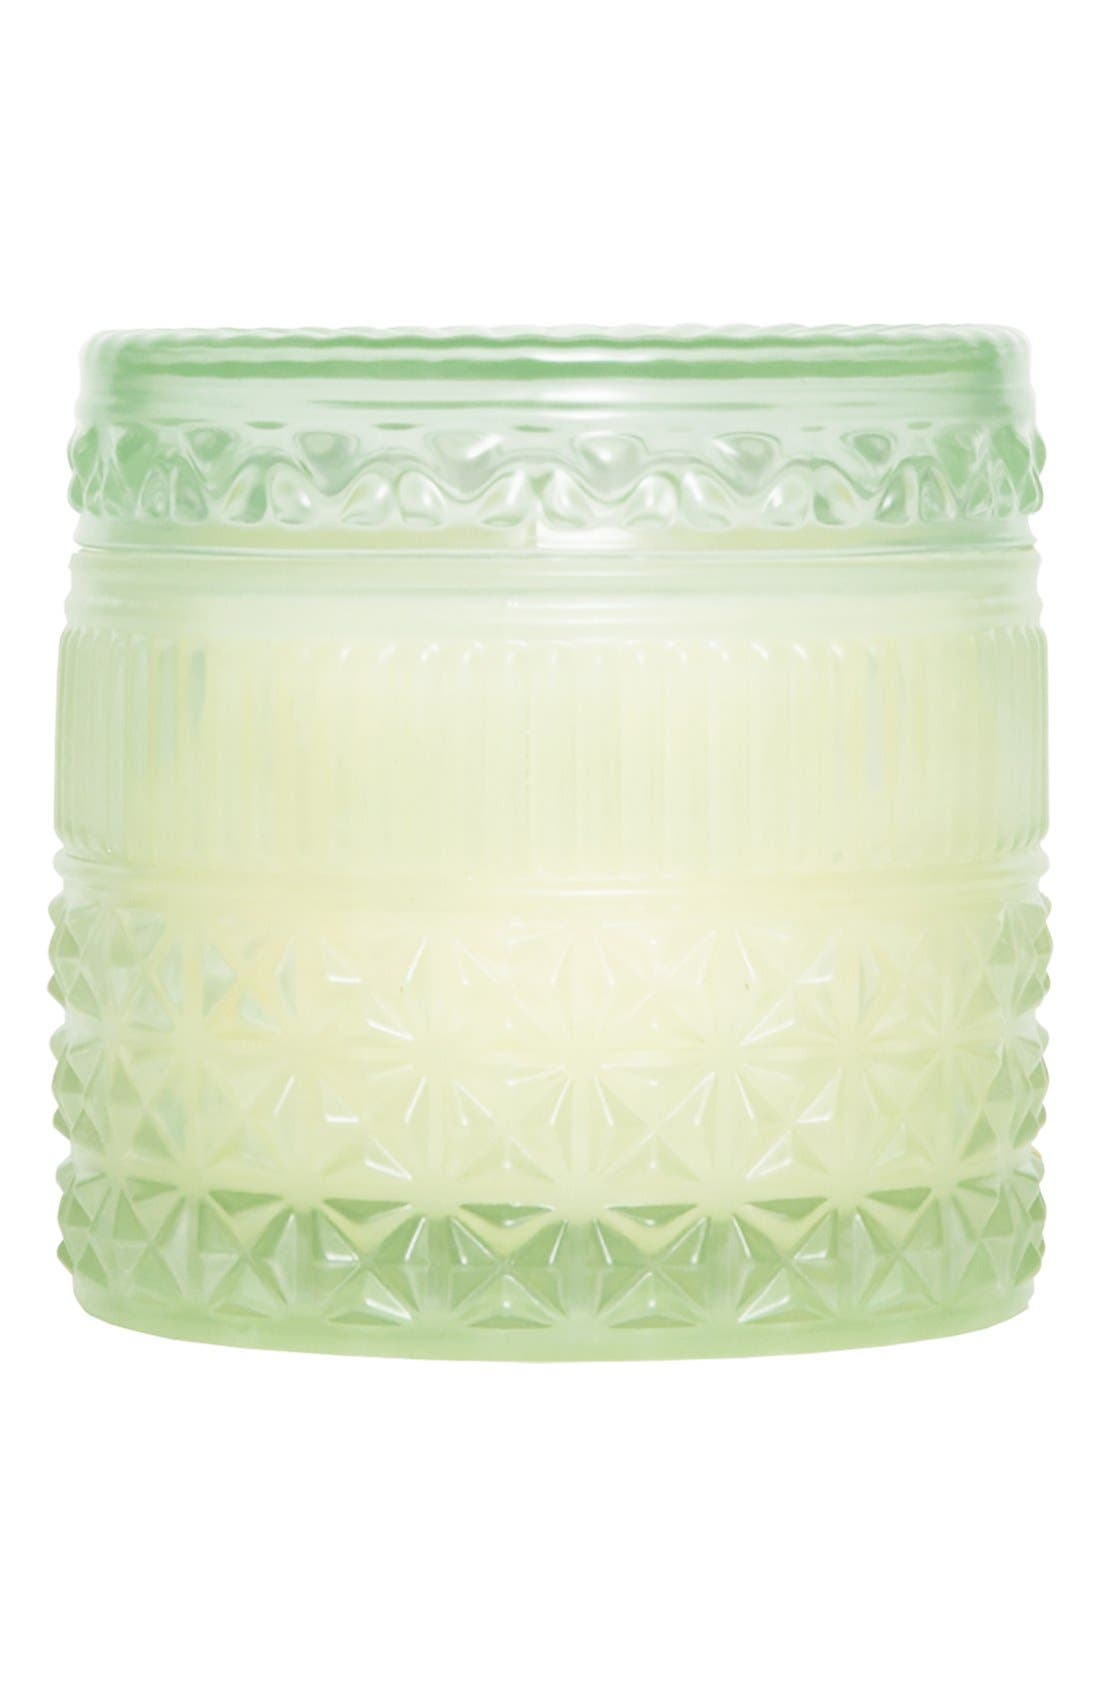 Main Image - Capri Blue 'Muse Collection' Candle